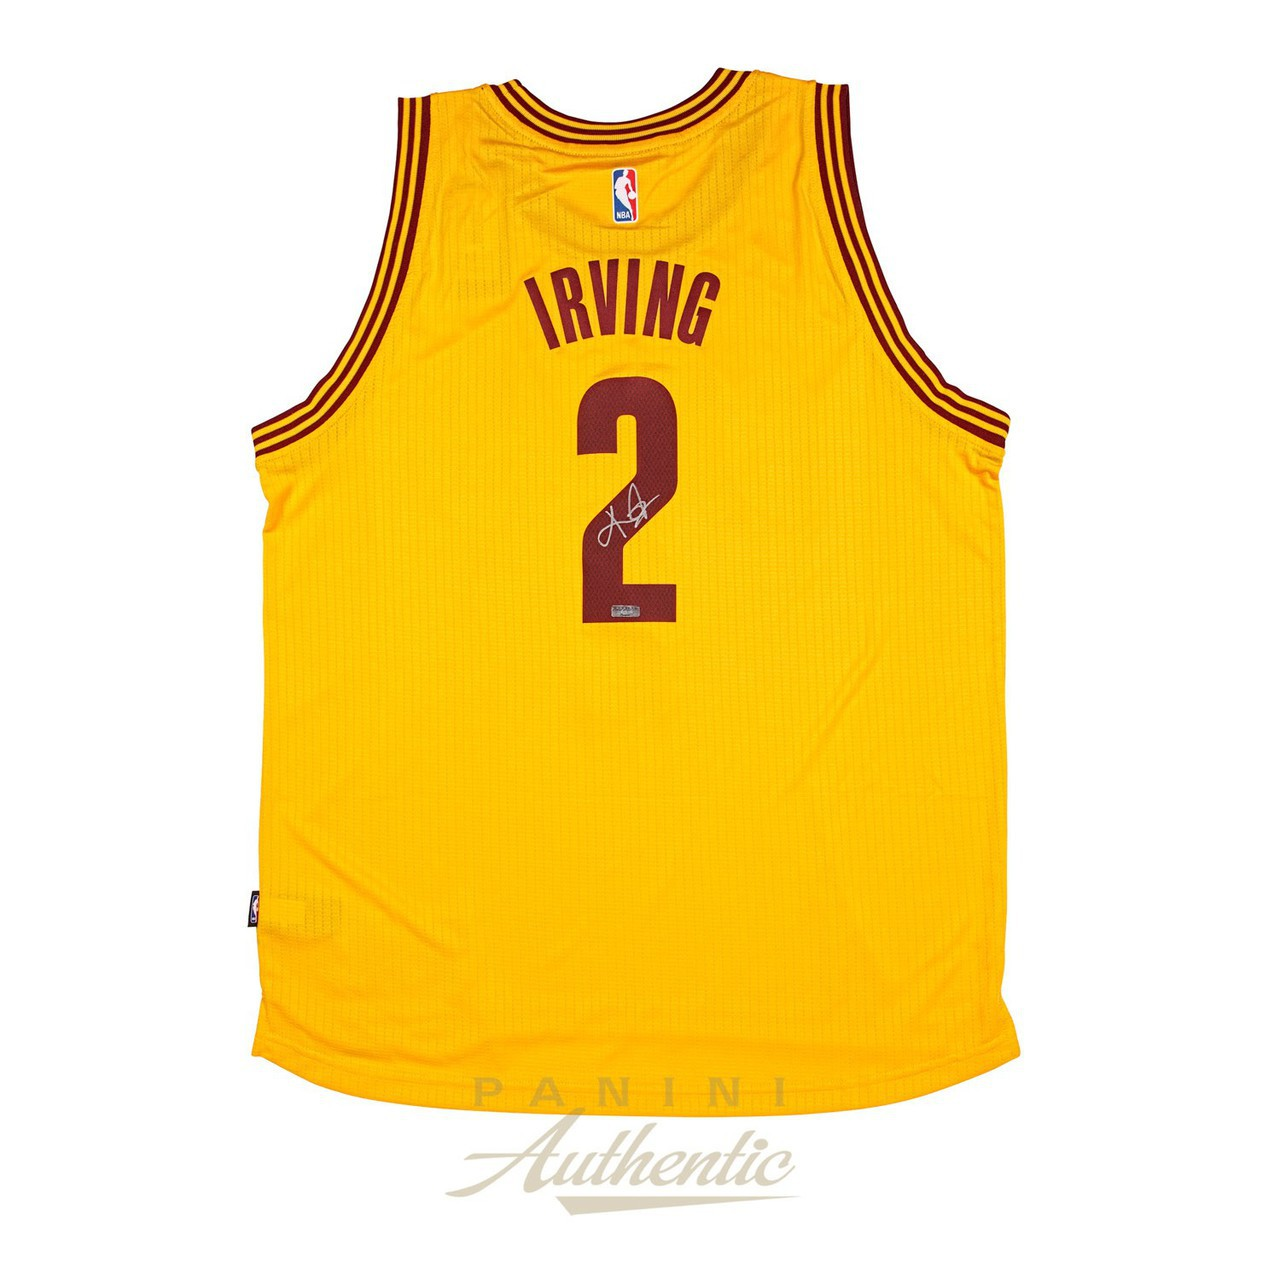 Kyrie Irving Signed Cleveland Cavaliers Yellow Jersey